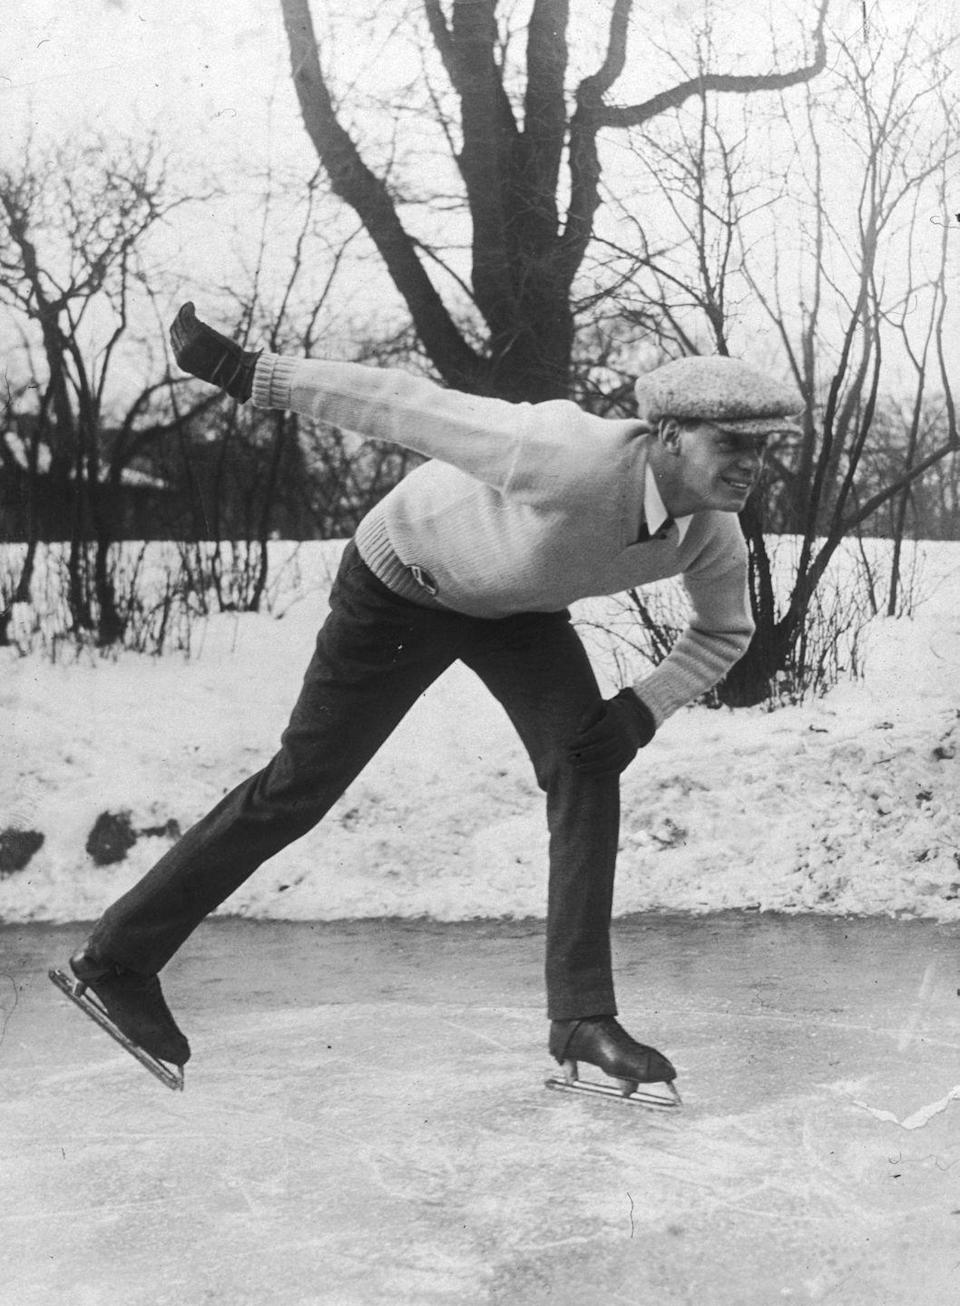 """<p><em>Tarzan </em>actor, Johnny Weissmuller, spends the day ice skating on a pond in 1925. The Hungarian-born actor <a href=""""https://www.olympic.org/johnny-weissmuller"""" rel=""""nofollow noopener"""" target=""""_blank"""" data-ylk=""""slk:won five Olympic gold medals"""" class=""""link rapid-noclick-resp"""">won five Olympic gold medals</a> for swimming before venturing to Hollywood. </p>"""